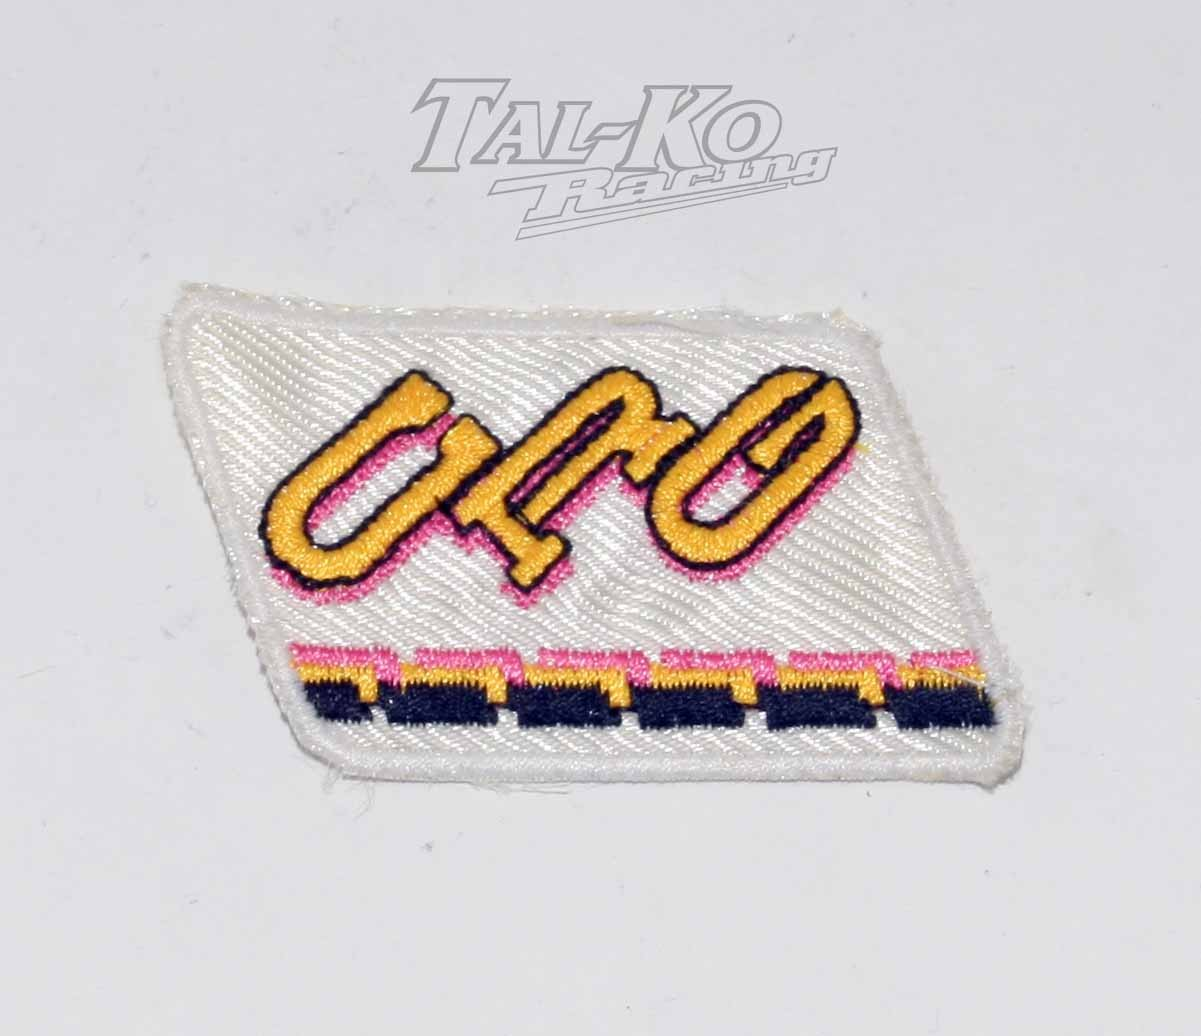 CRG CLOTH RACE SUIT BADGE 125 x 65